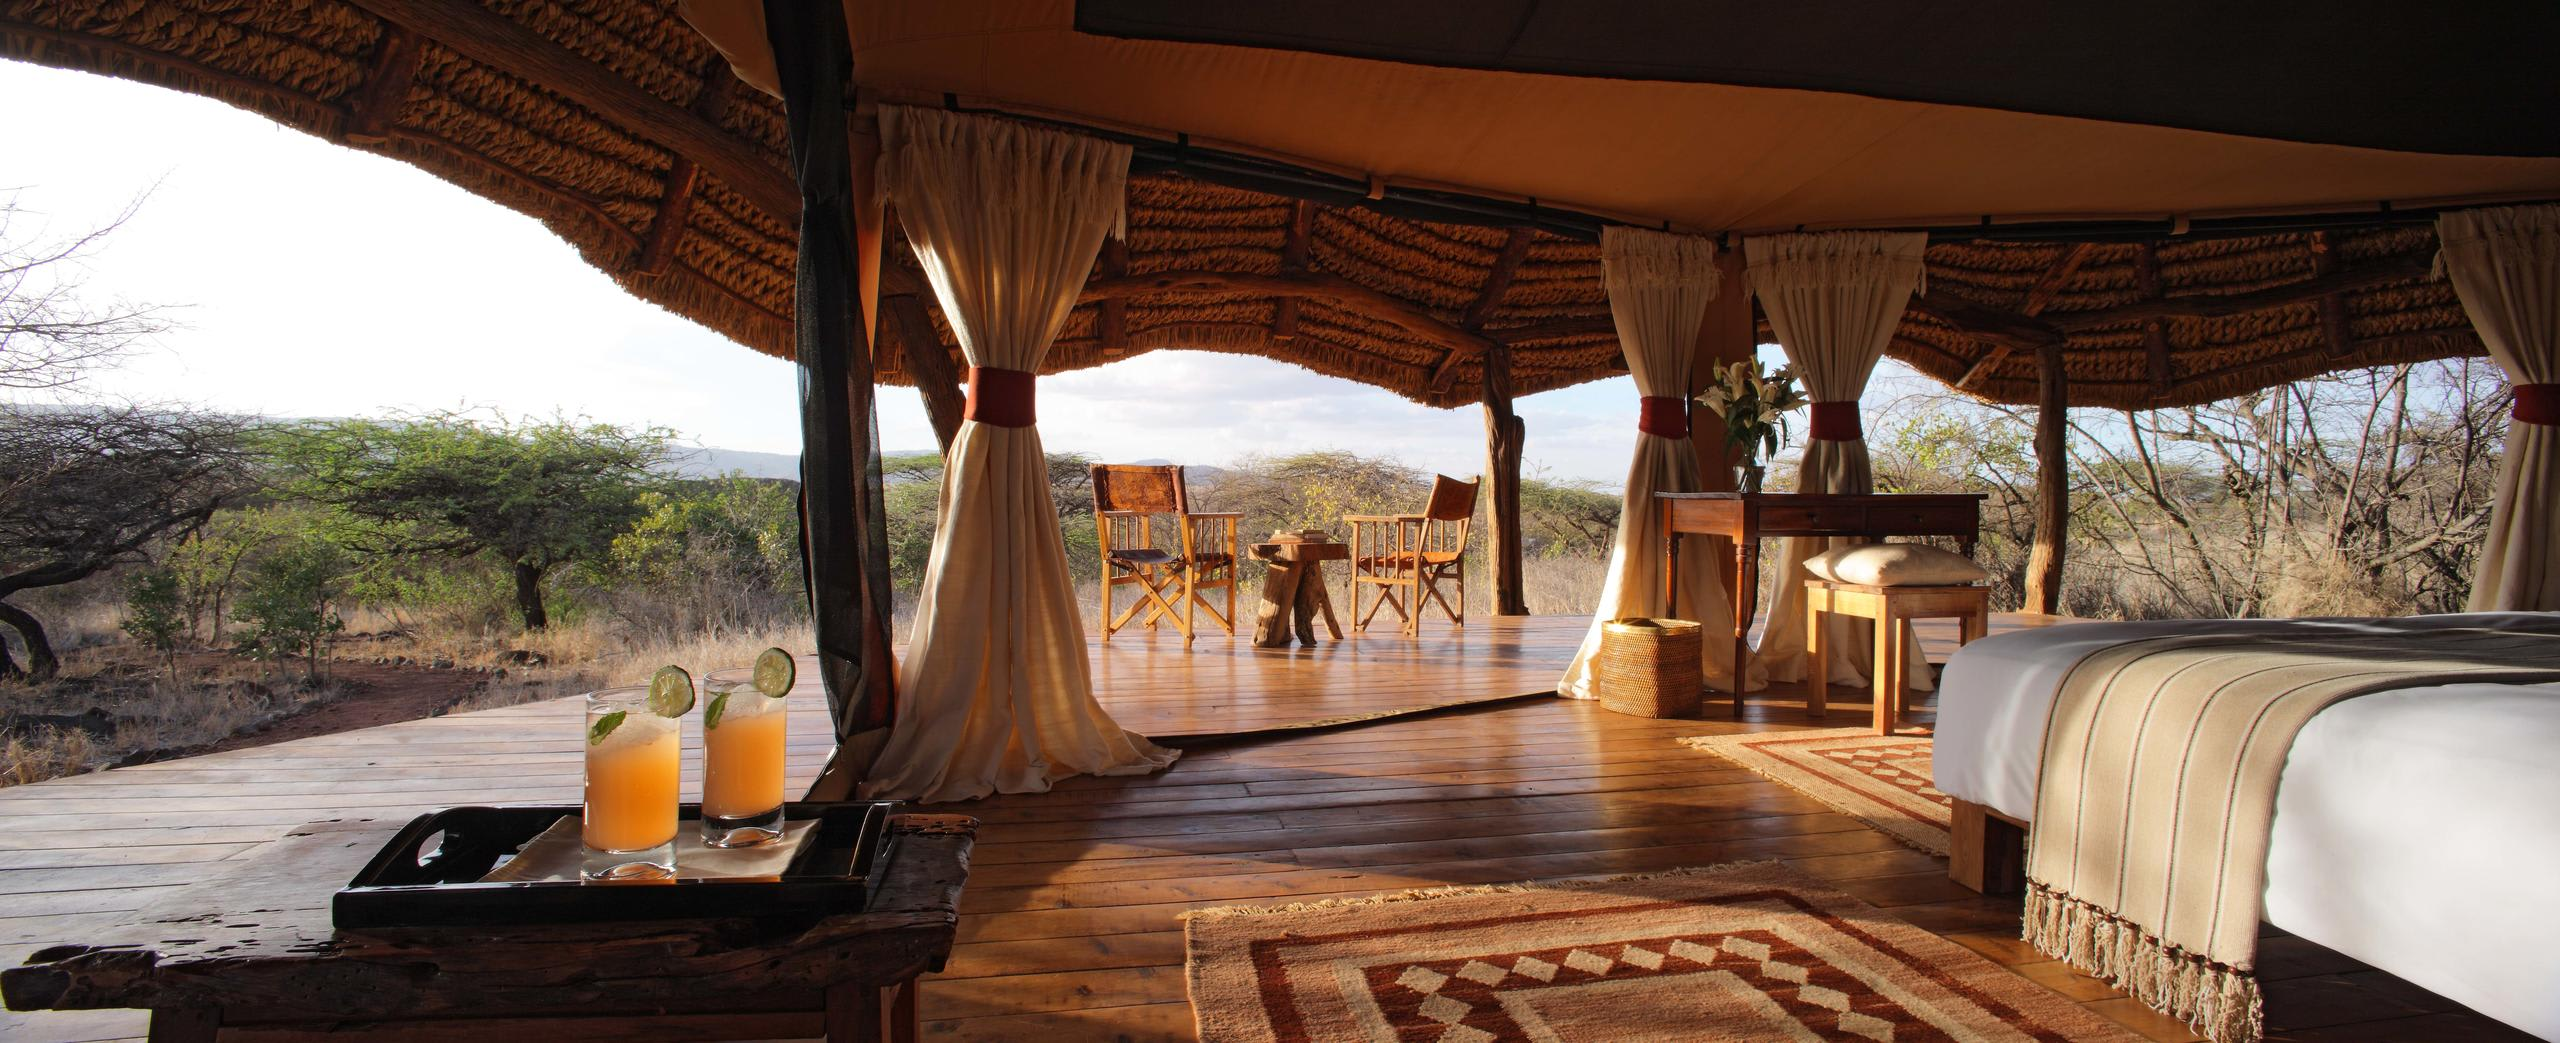 Luxury Safari Tent with view